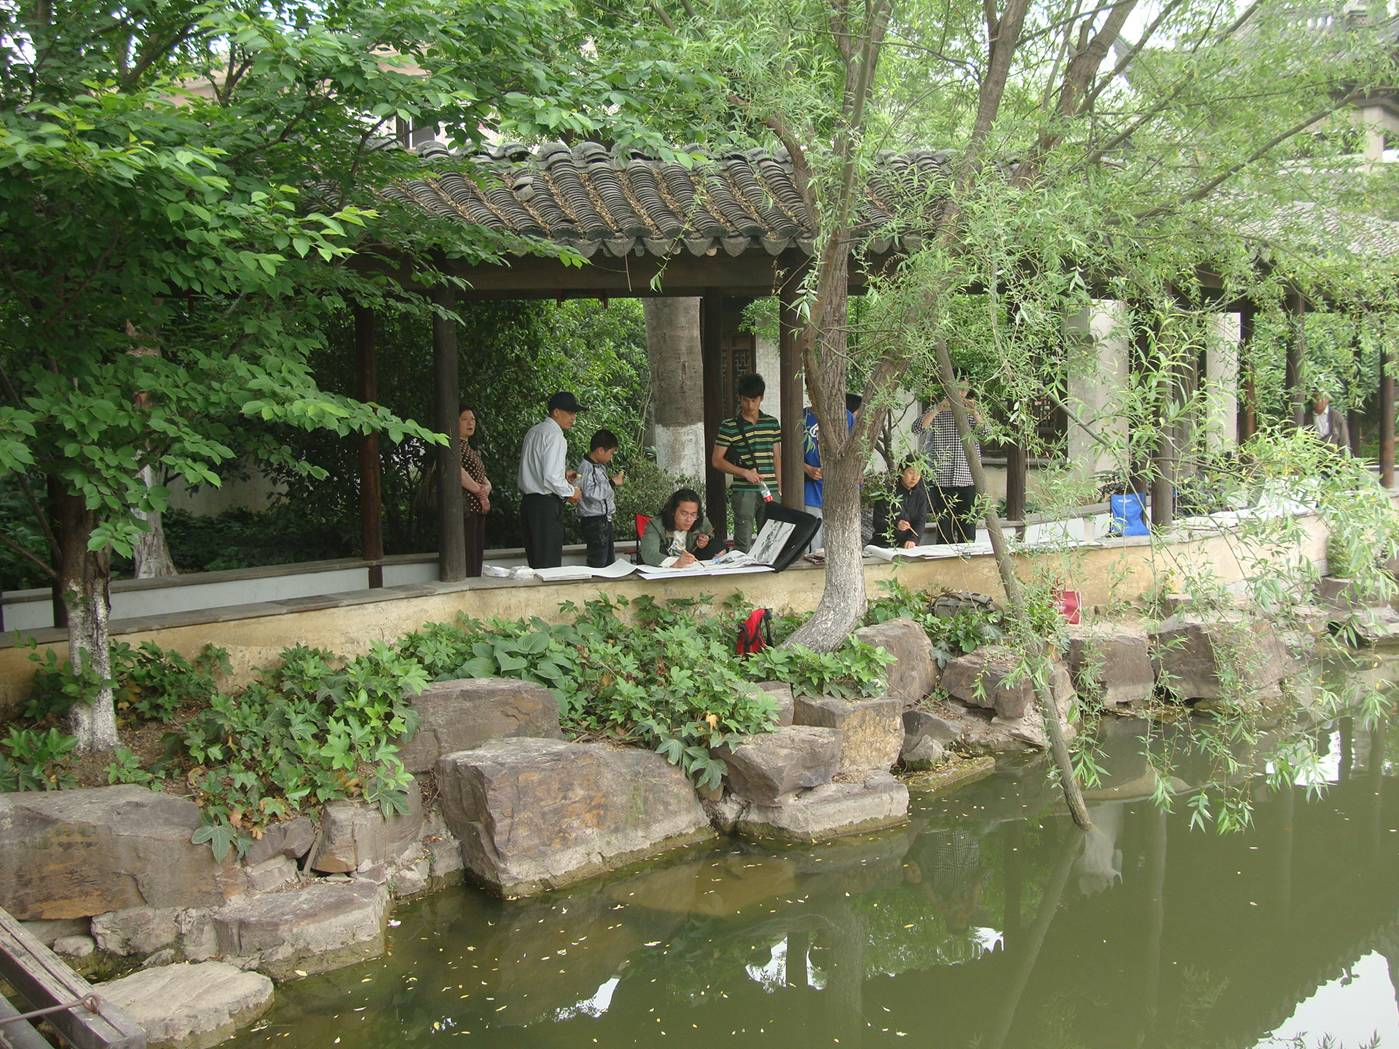 Picture:  Painters at work at the pond on the grounds of the museum outside Xi Hui Park, Wuxi, China